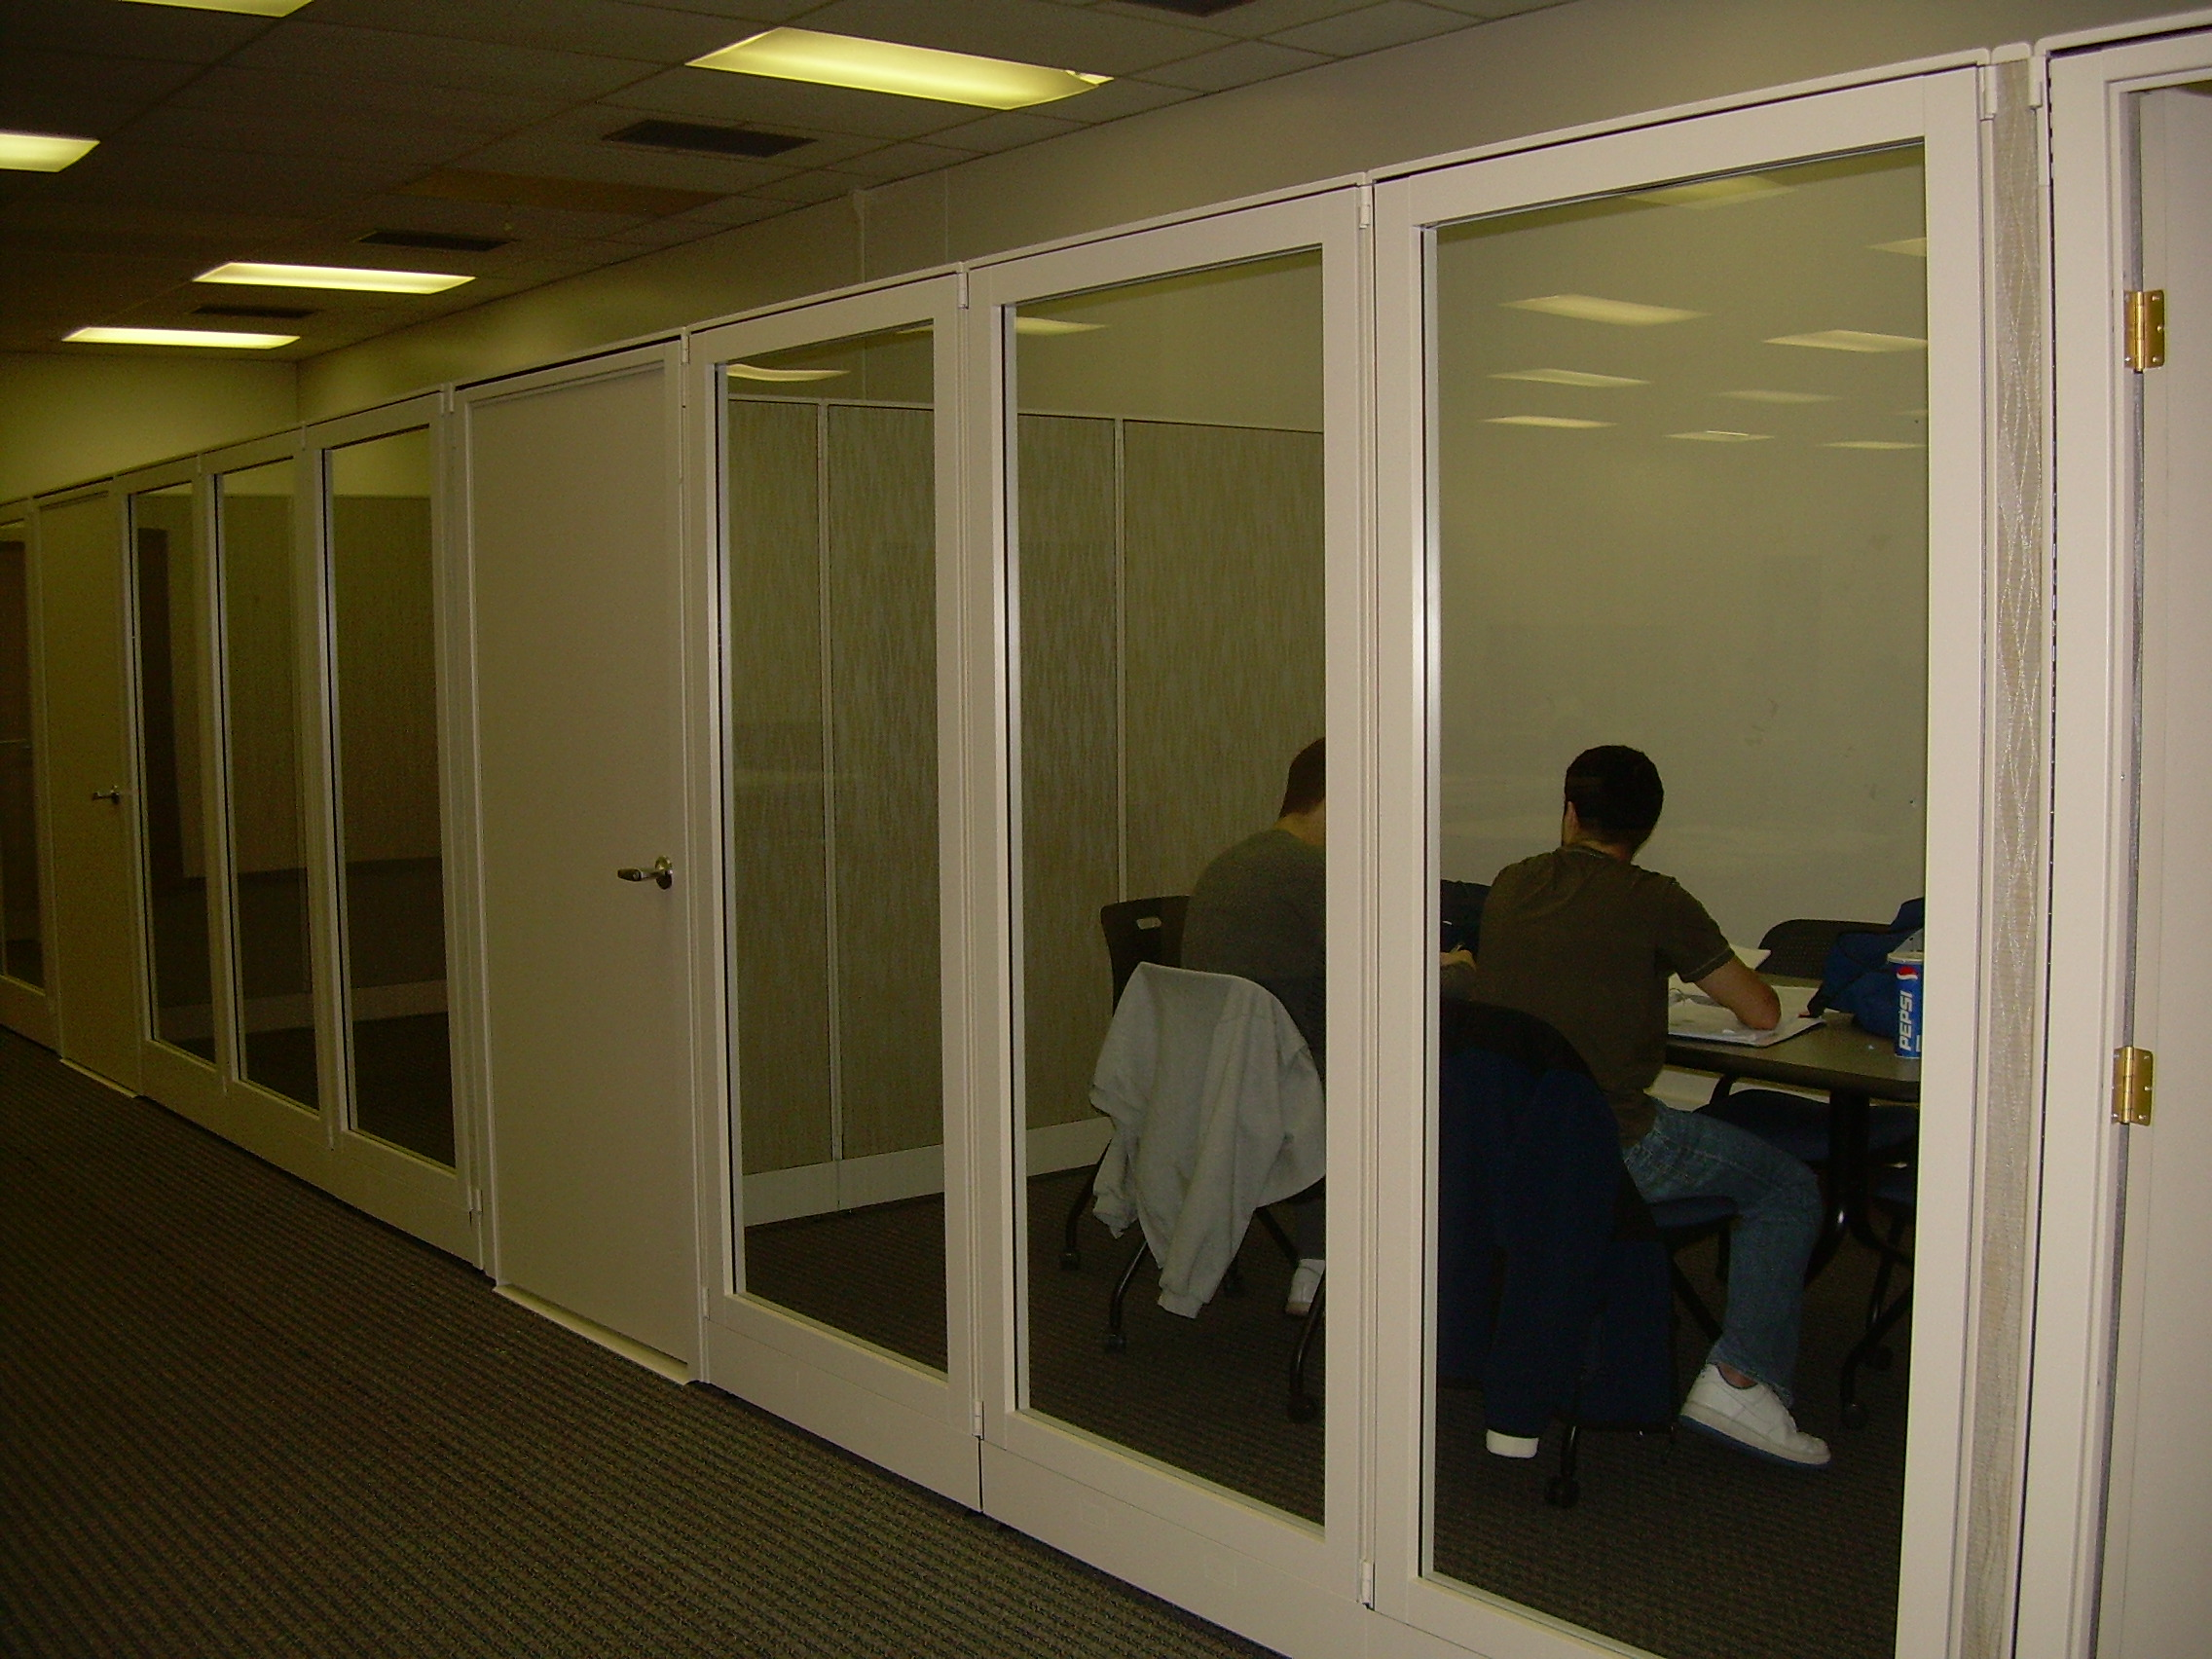 collaboration rooms